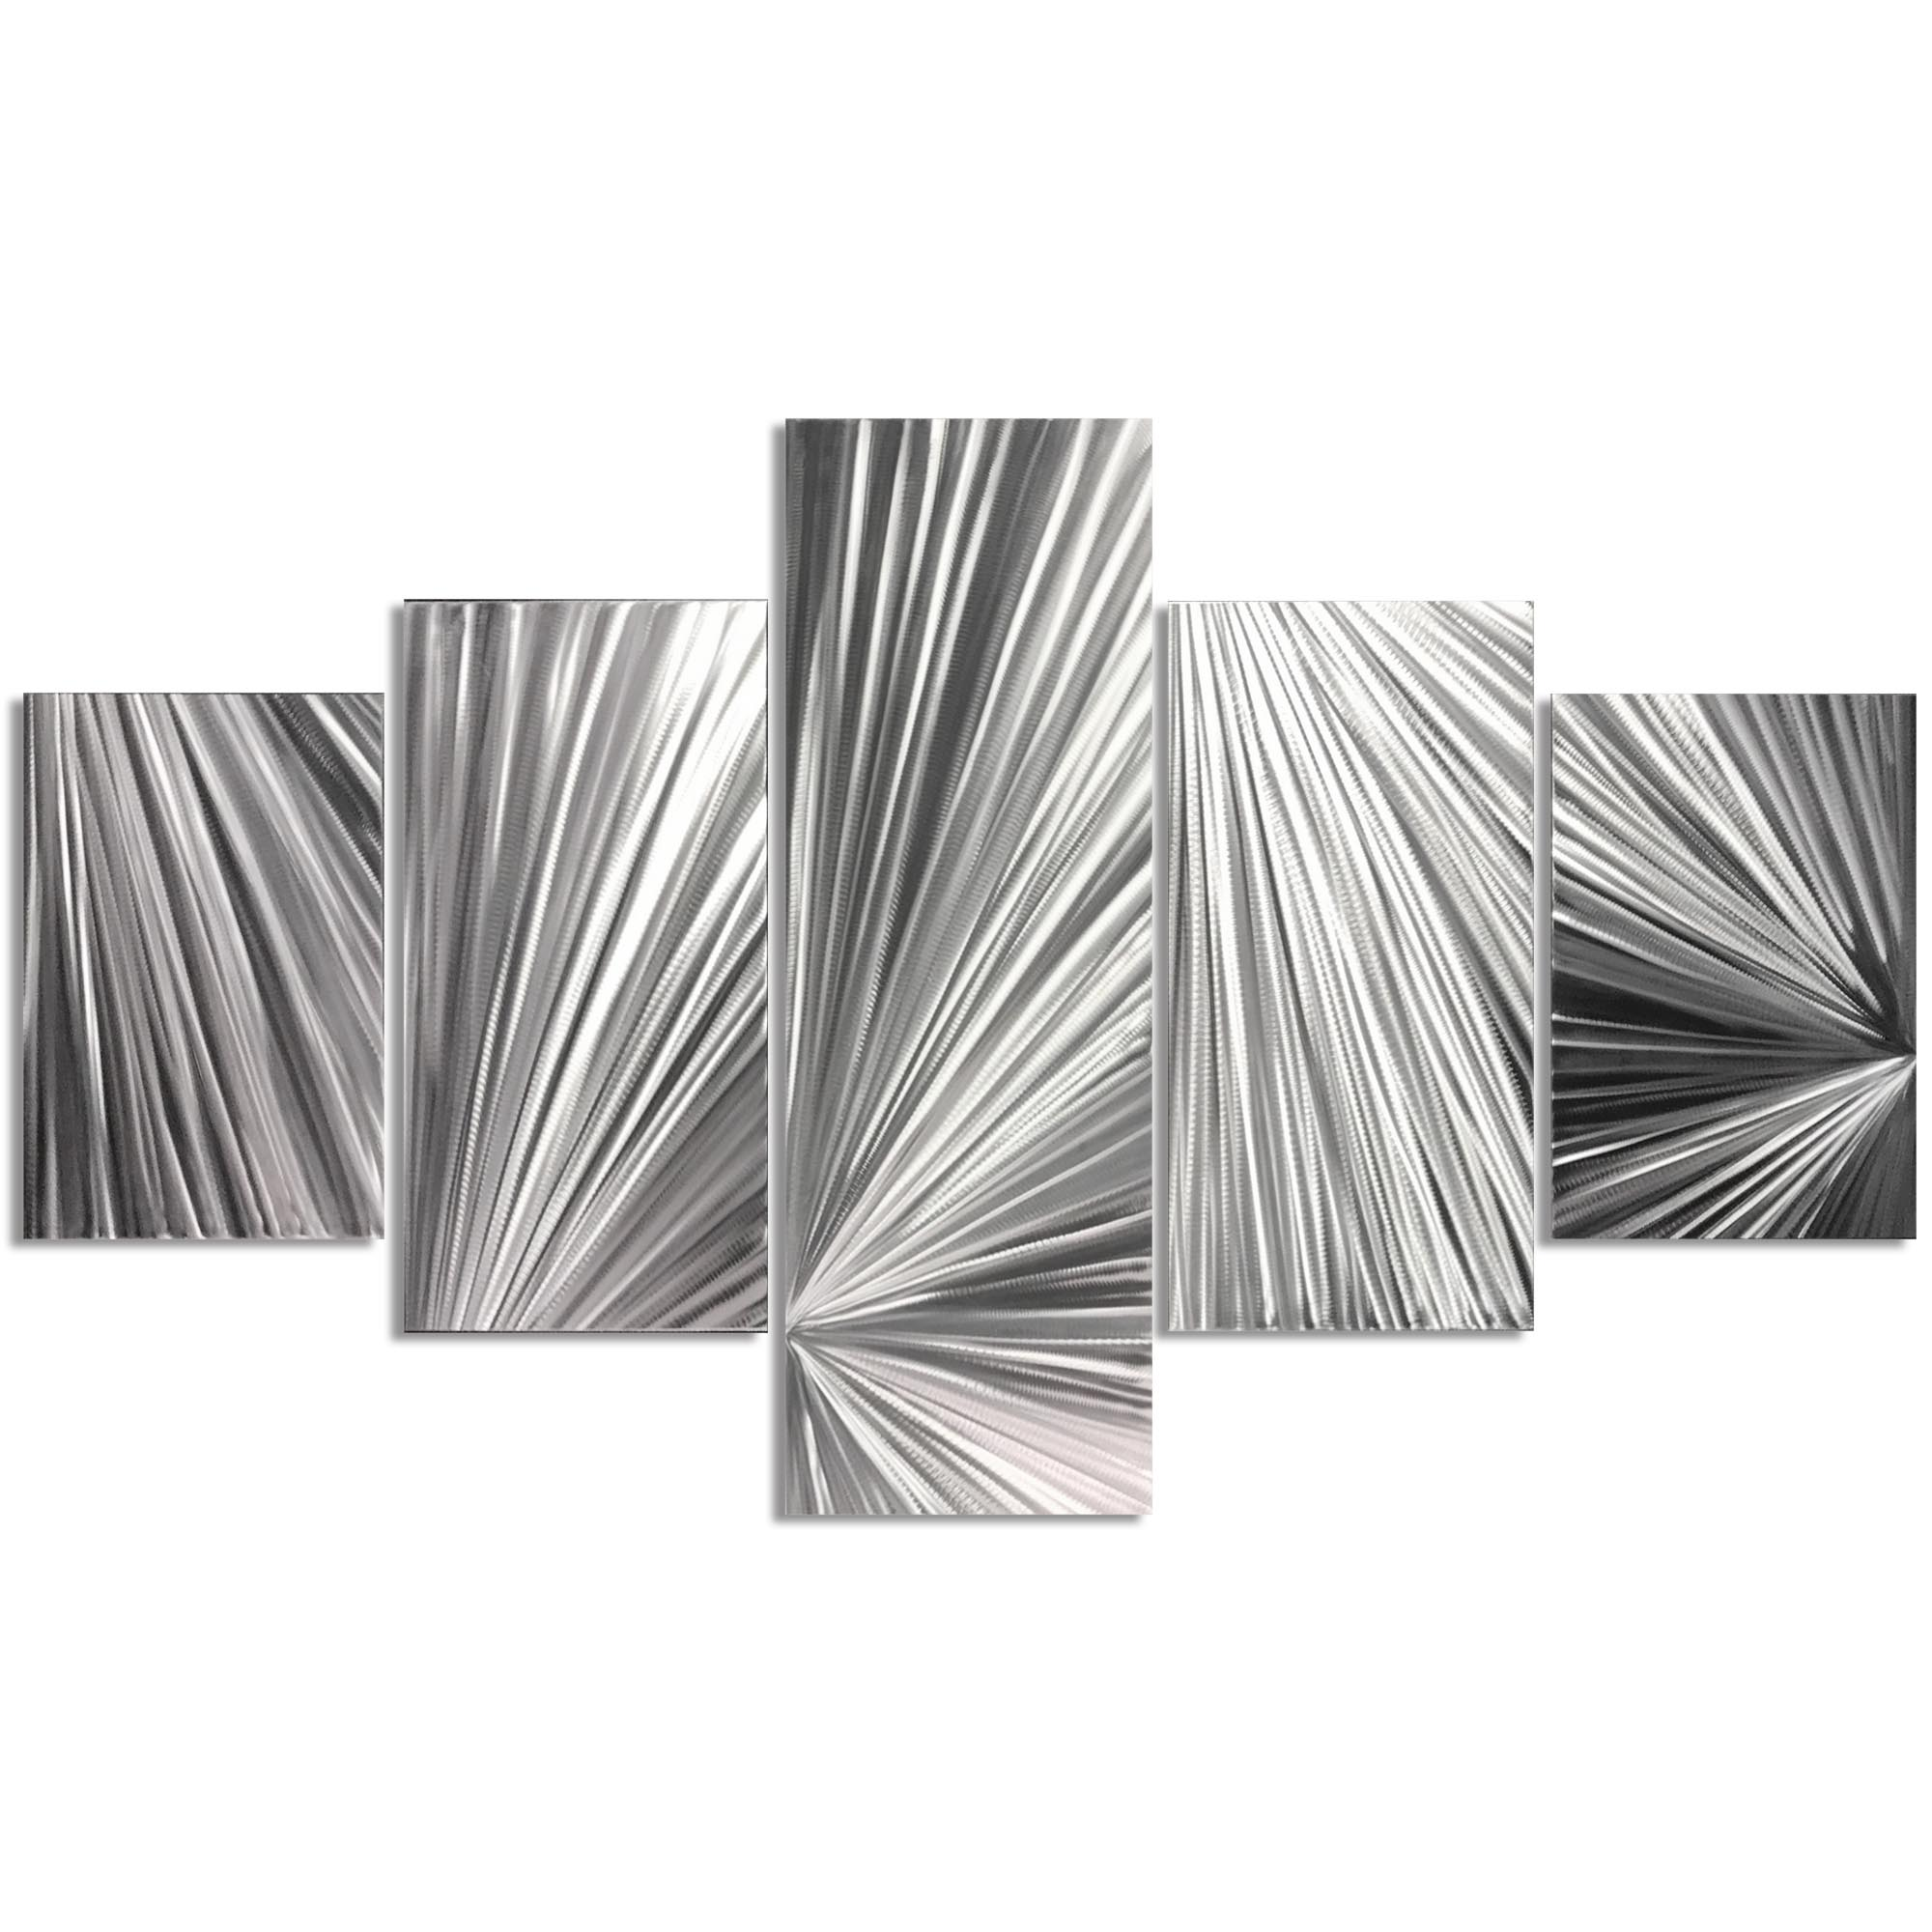 Columnar Light 64x36in. Natural Aluminum Abstract Decor